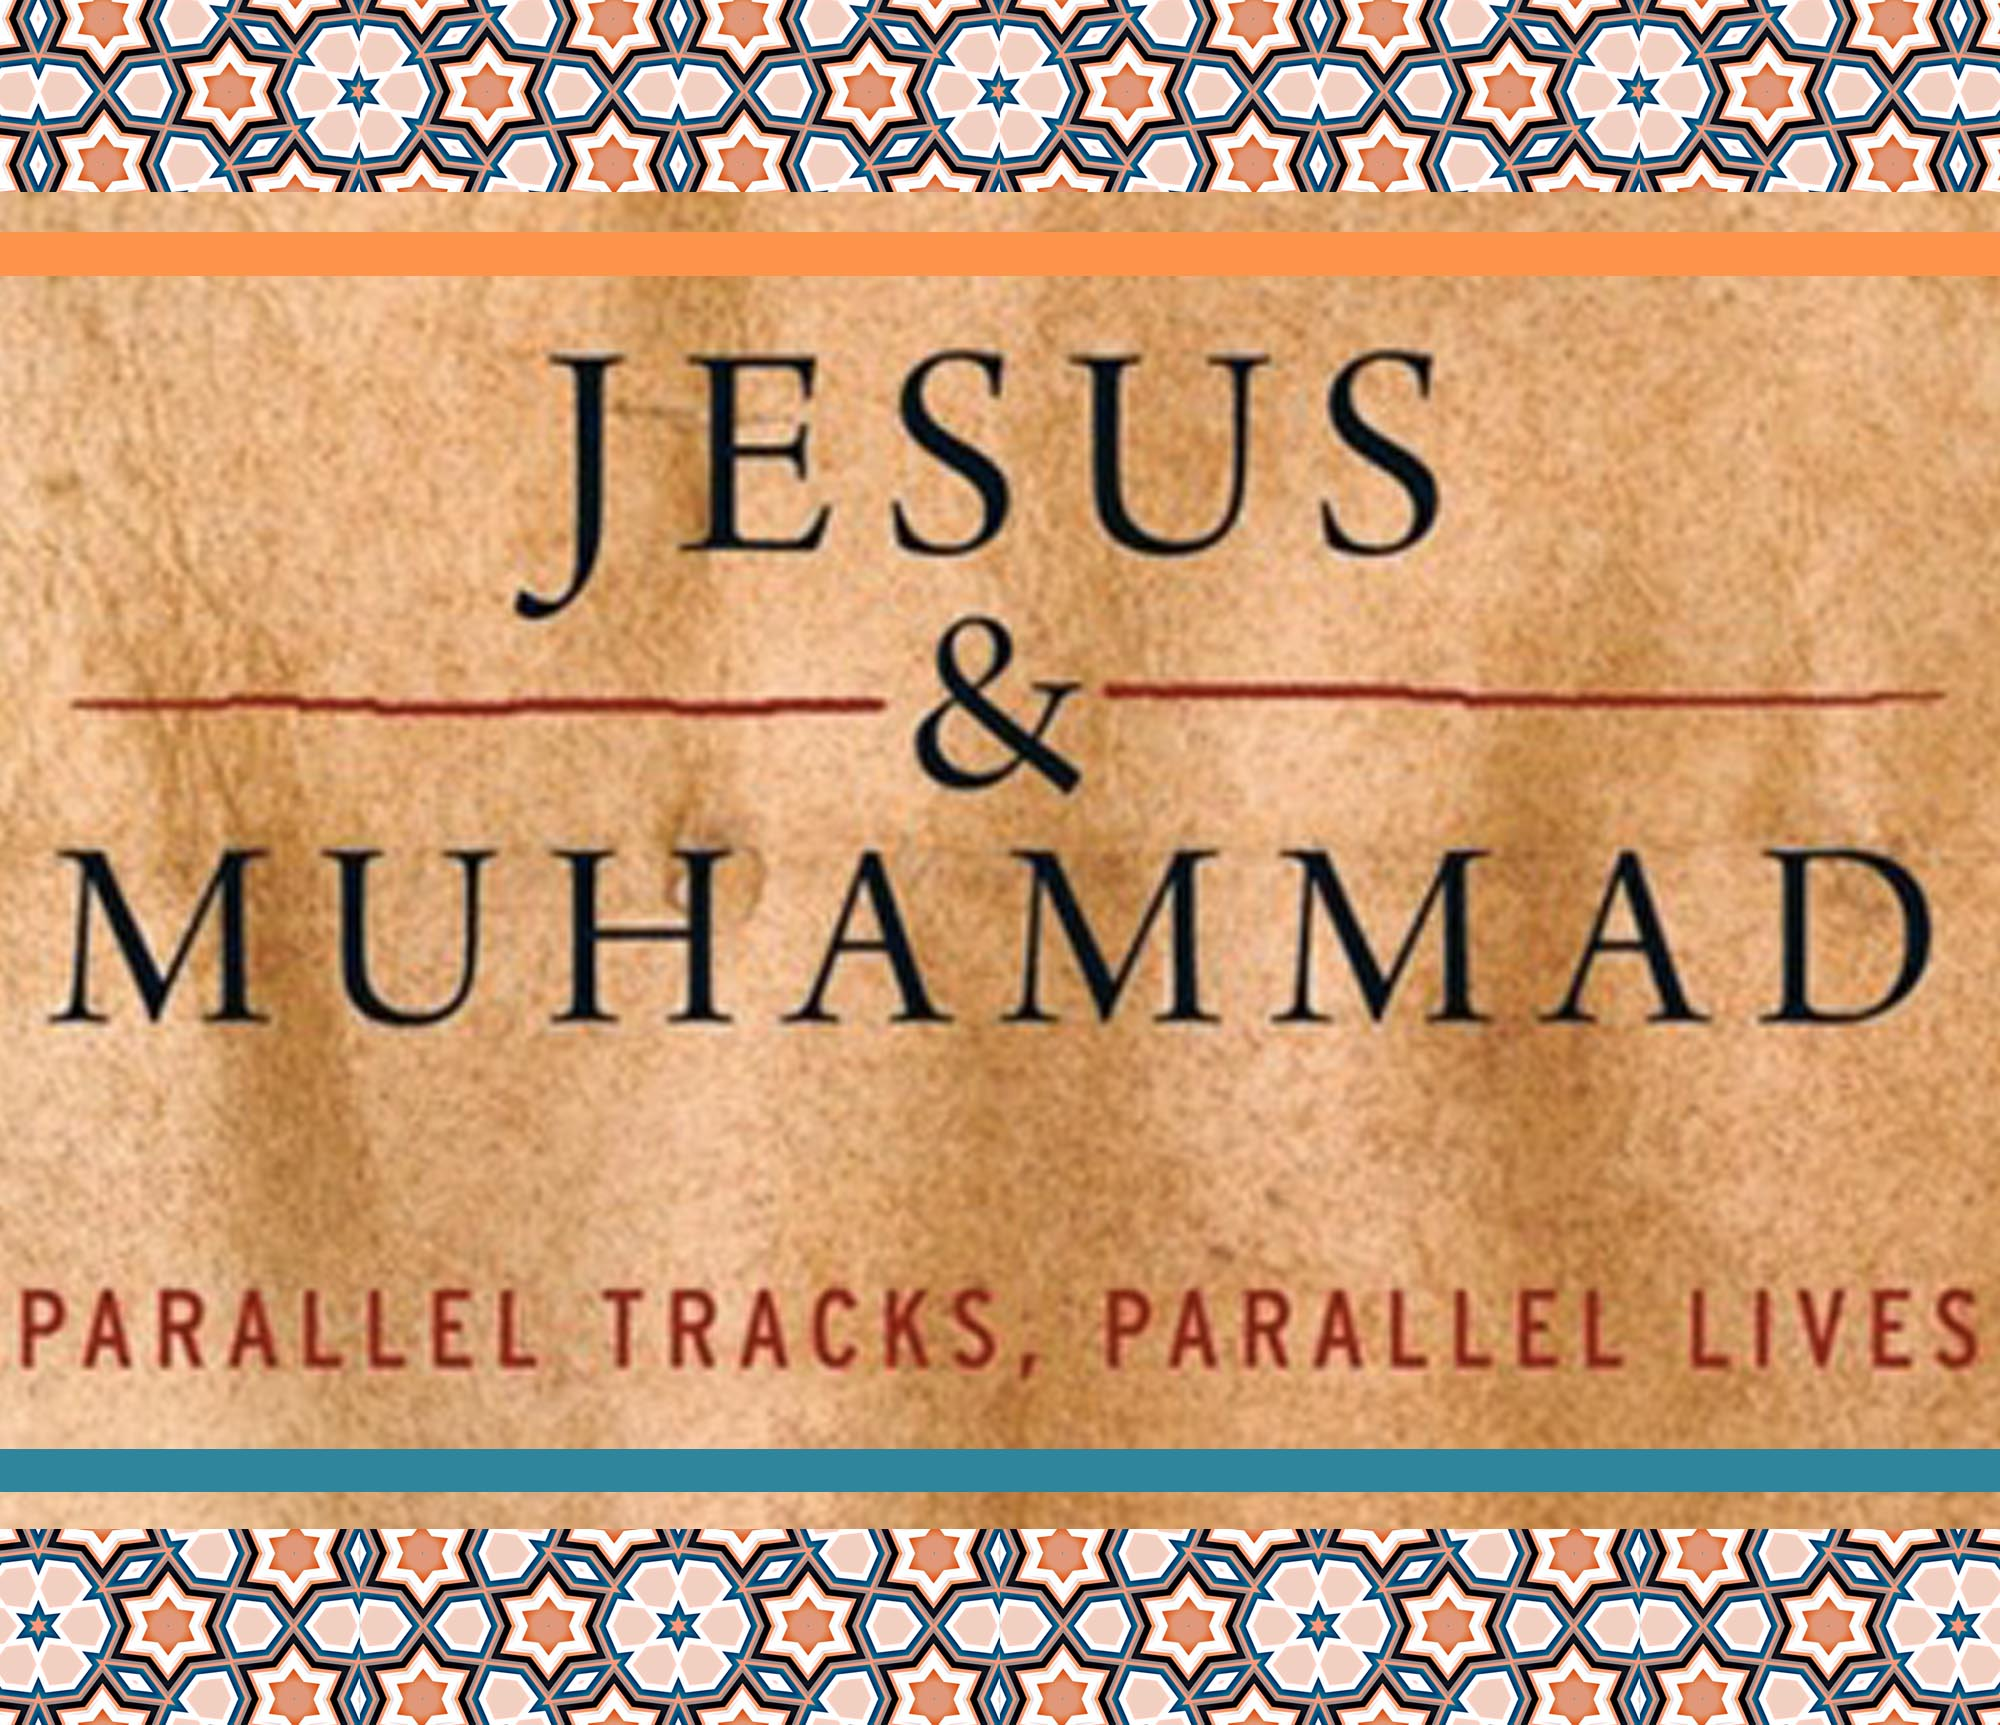 http://muslimvillage.com/wp-content/uploads/2010/12/Muhammad-and-Jesus.jpg